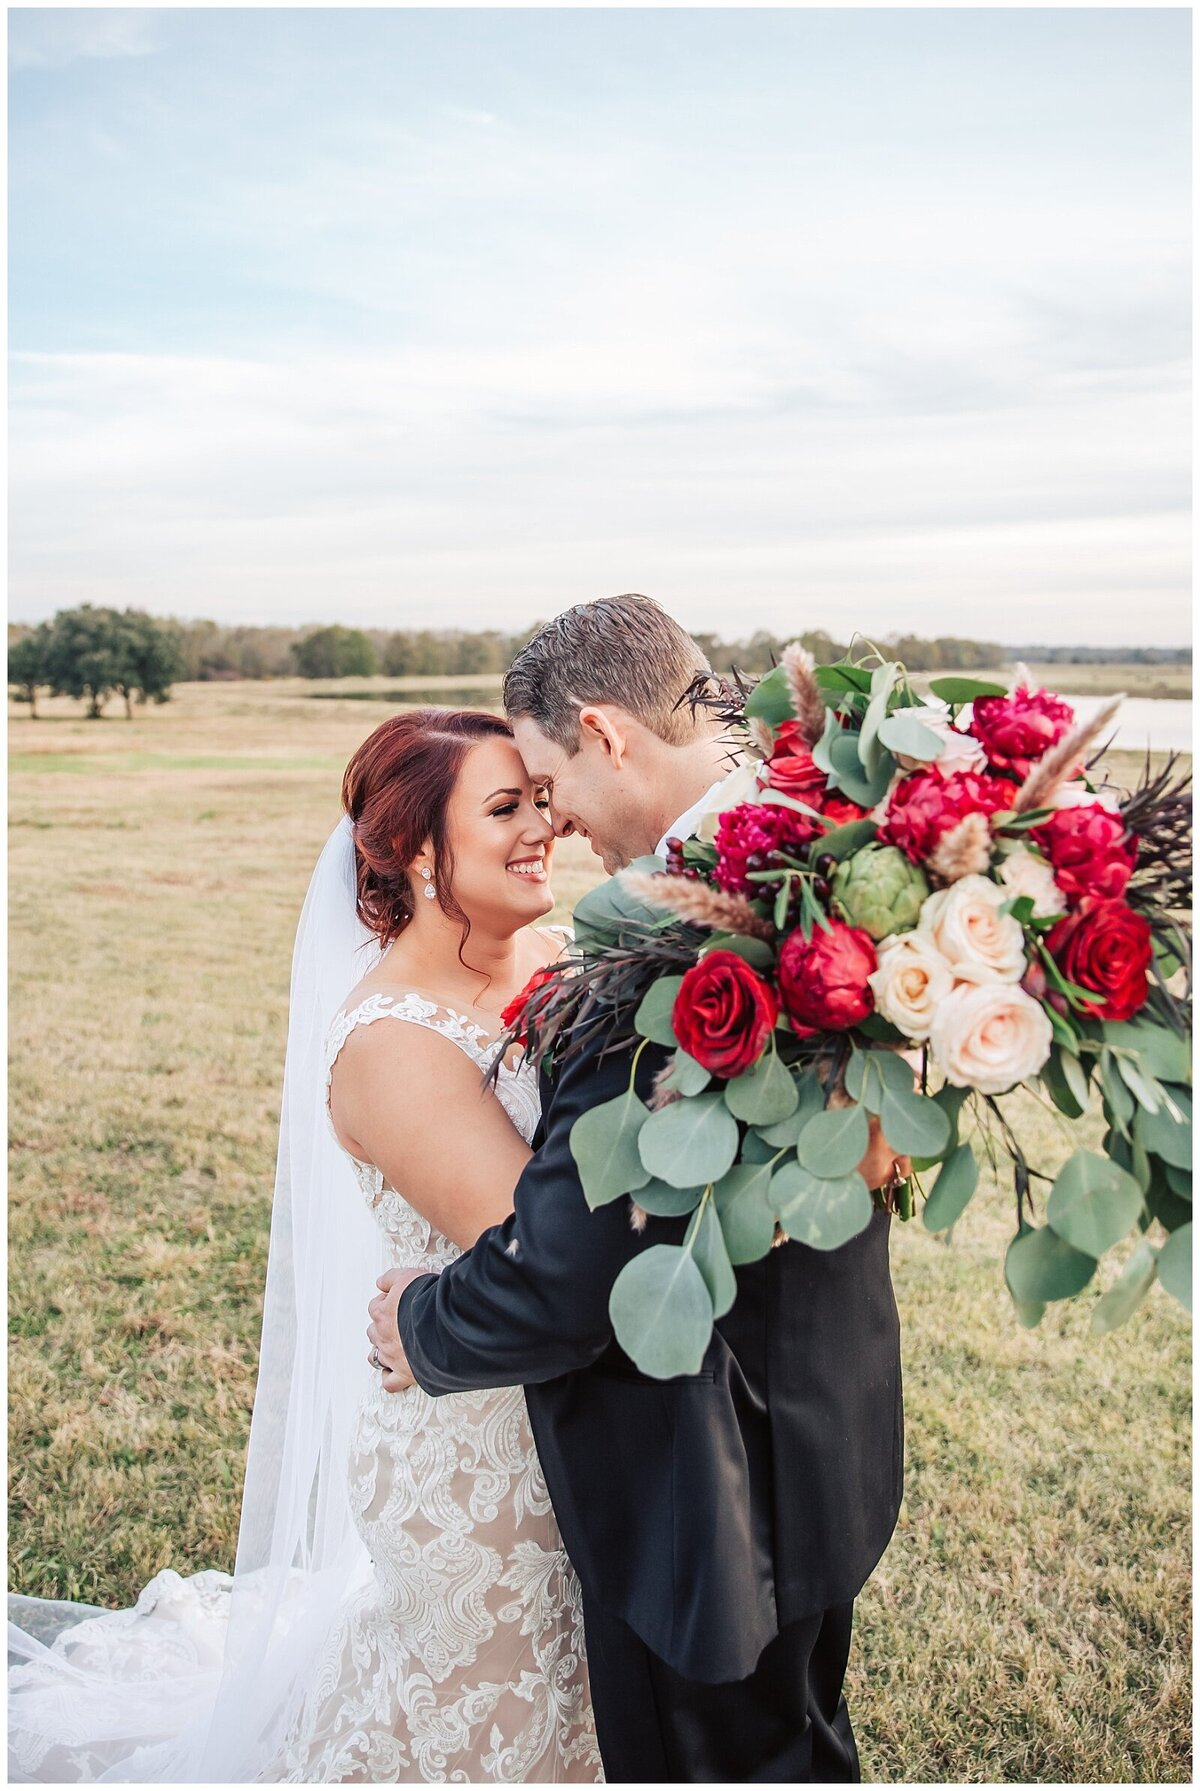 Rustic Burgundy and Blush Indoor Outdoor Wedding at Emery's Buffalo Creek - Houston Wedding Venue_0687